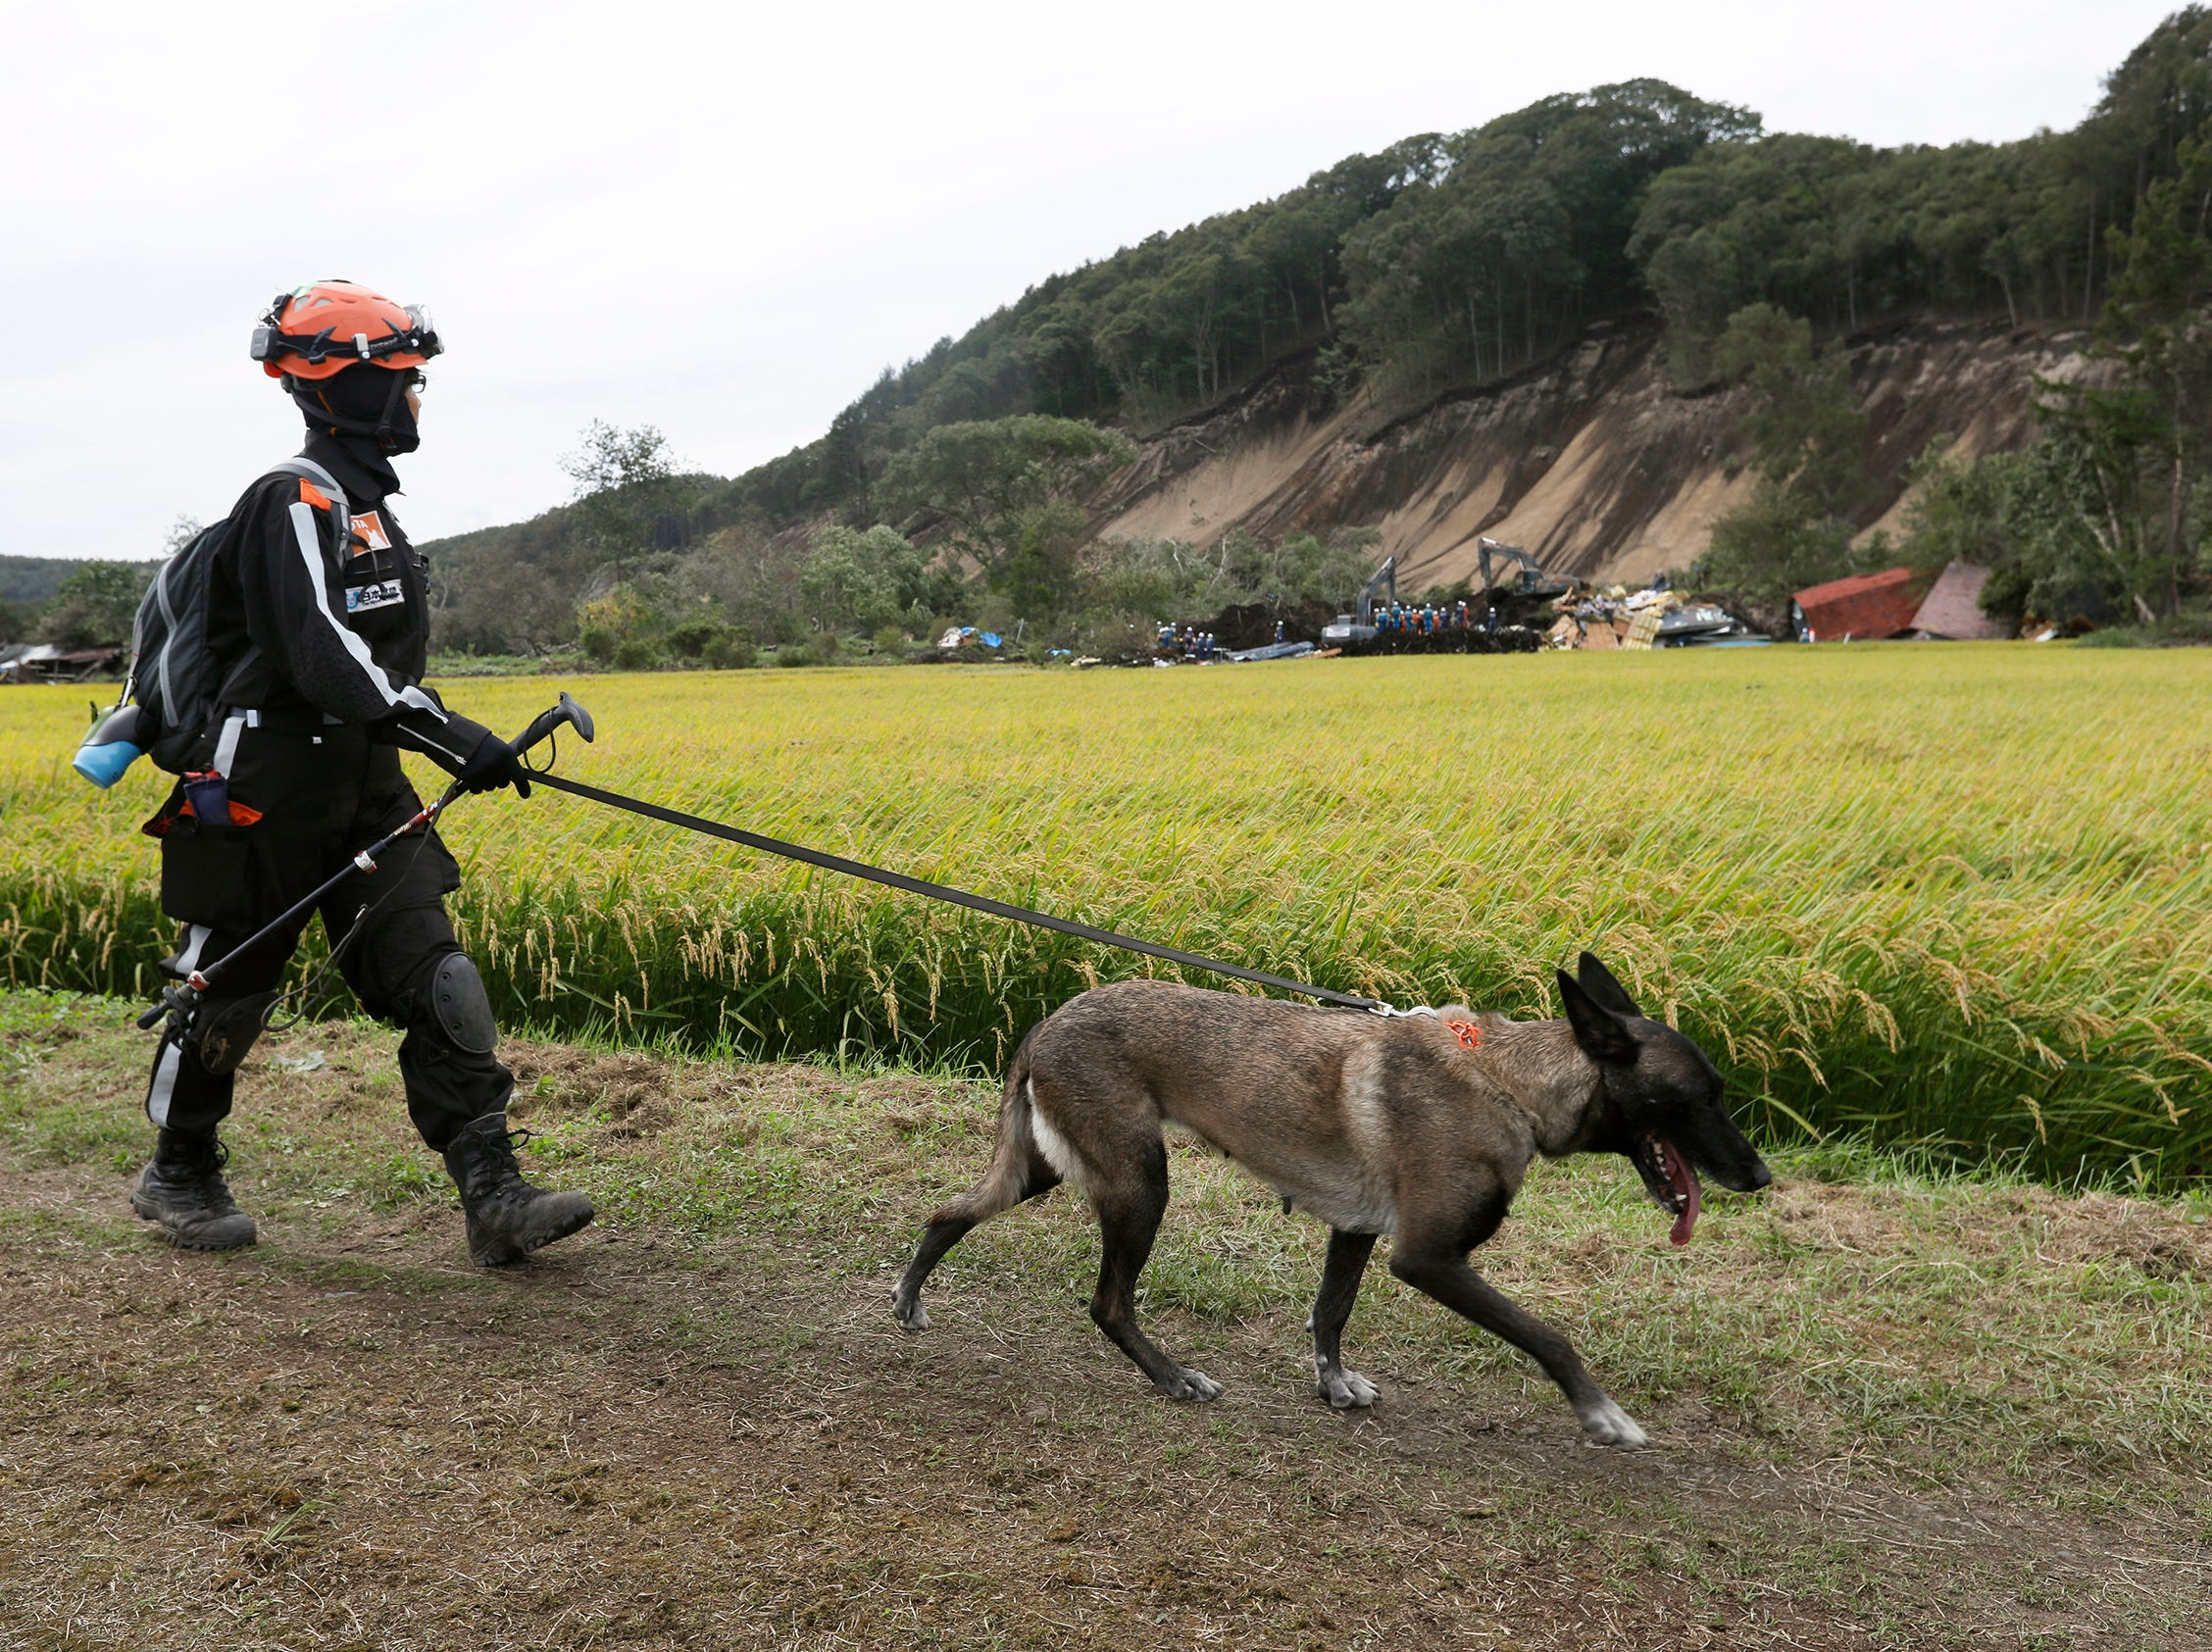 A rescue member with dog are seen as rescue operations (rear) continue at large landslide site in the Yoshino district of Atsuma, an area that was hit by a powerful earthquake, in Hokkaido, Japan. Japanese Prime Minister Shinzo Abe ordered to dispatch 25,000 personnel of Japan's Self-Defense Forces (JSDF) to earthquake-hit areas.